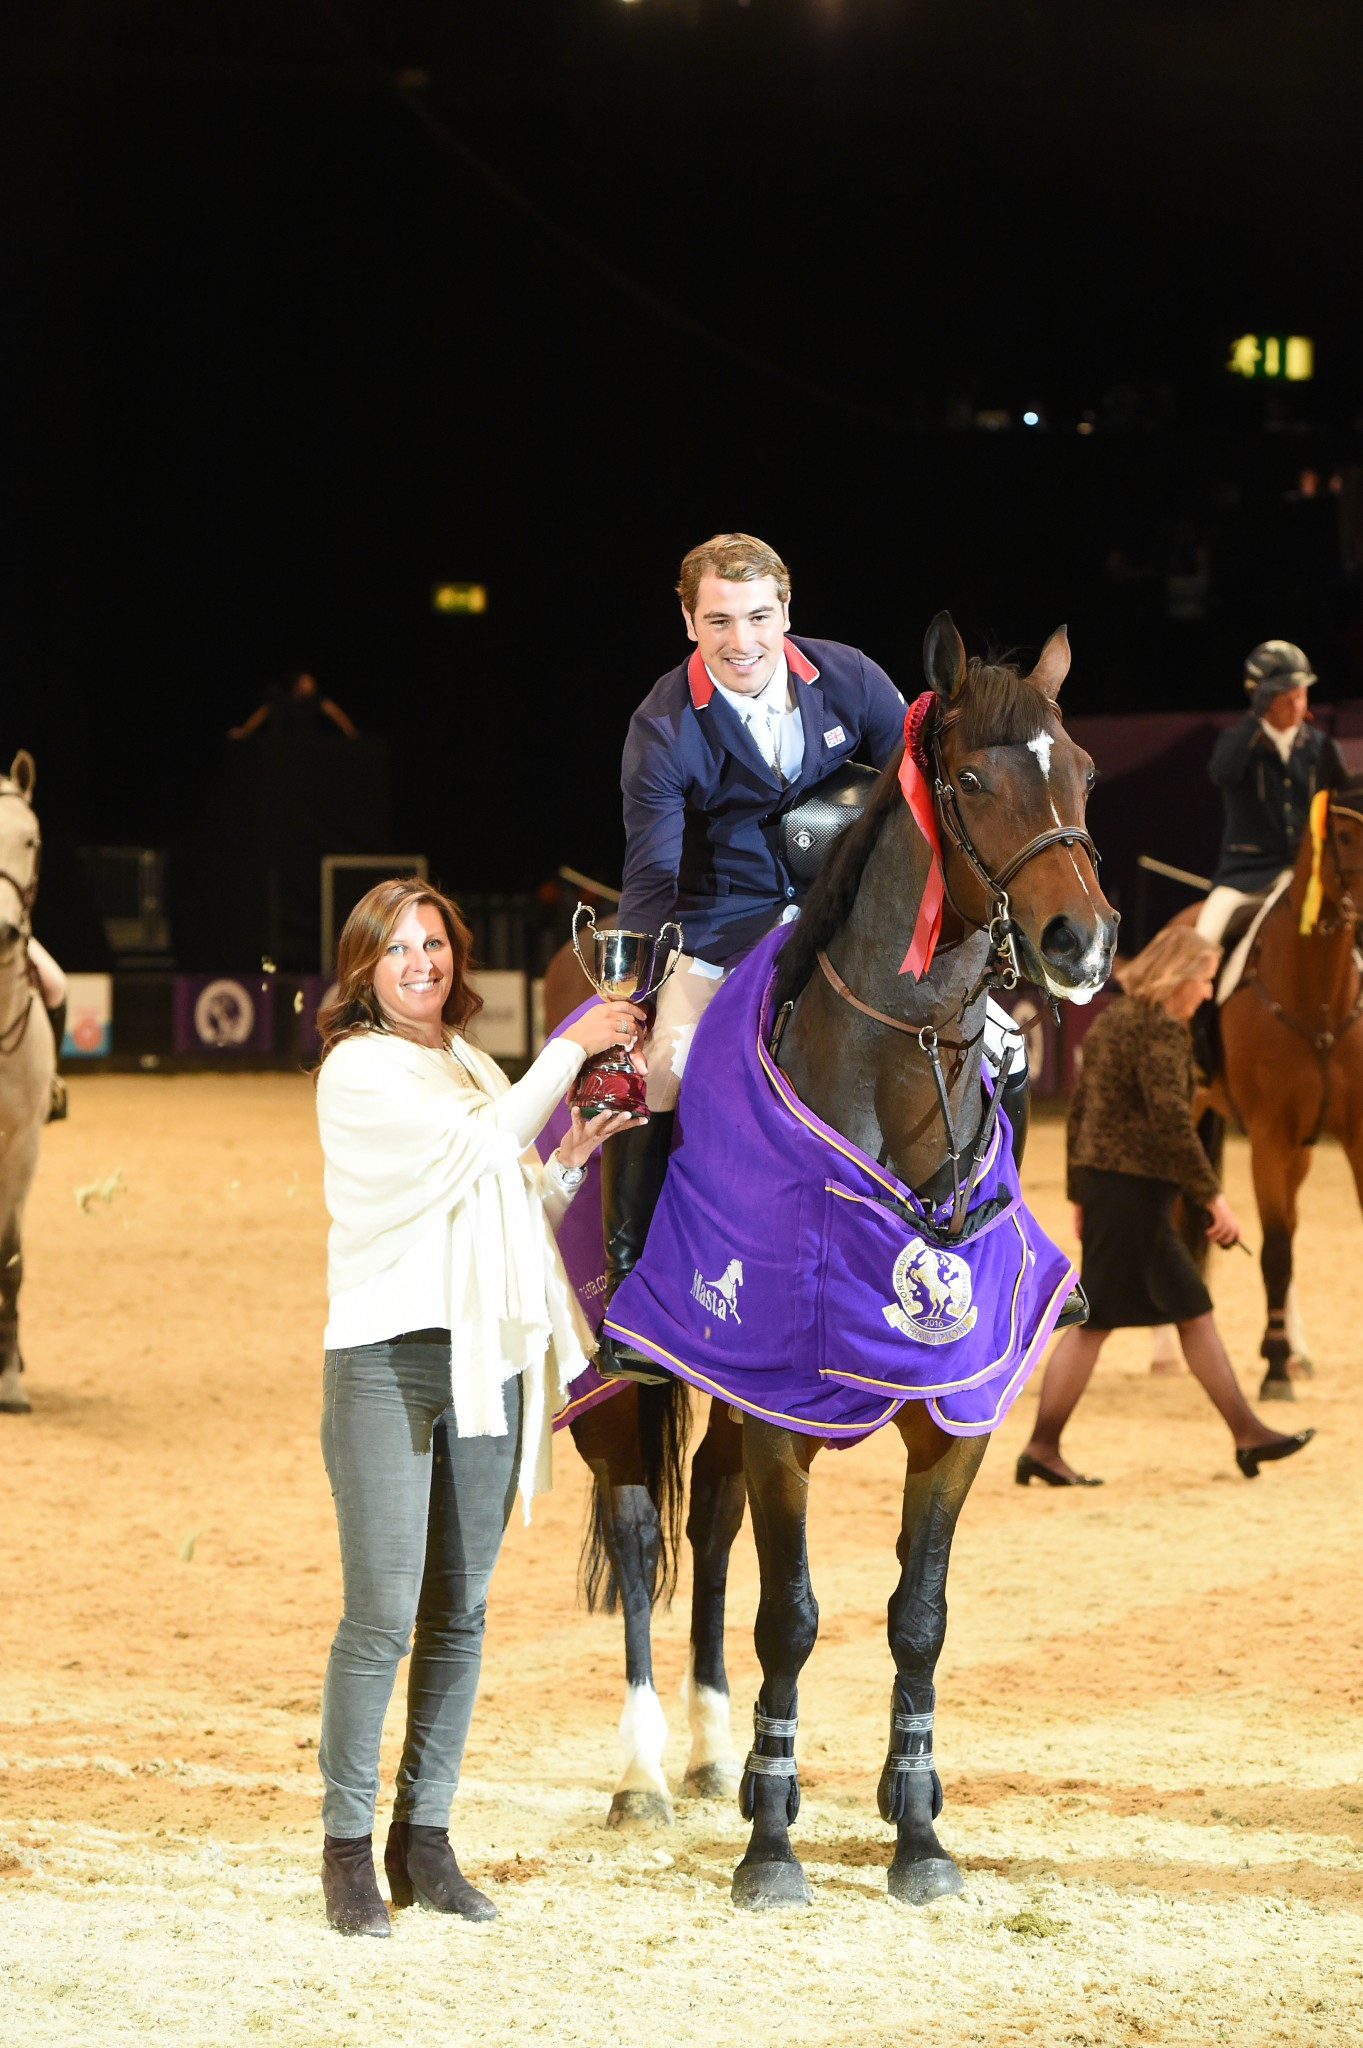 Joe Whitaker Lavarno ReadySupp Cup Credit ES PHotography - South Yorkshire's Joe Whitaker wins the ReadySupp Cup in the International Showjumping at Horse of the Year Show